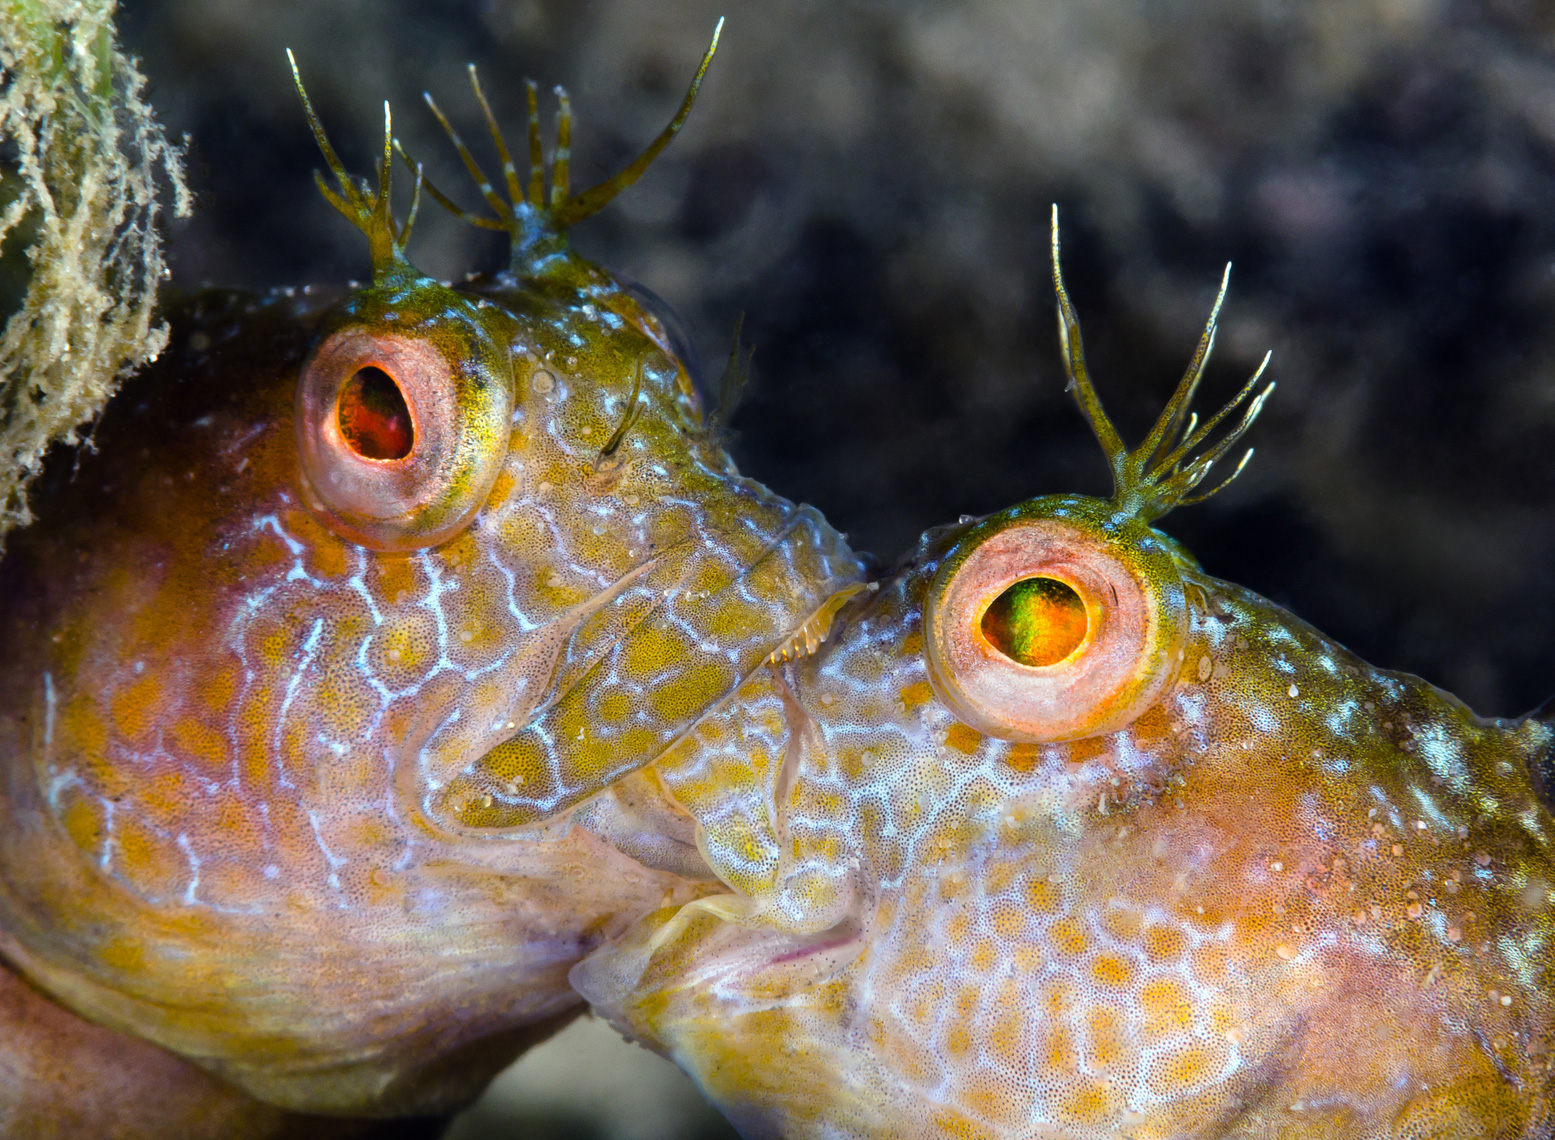 Seaweed blennies fighting